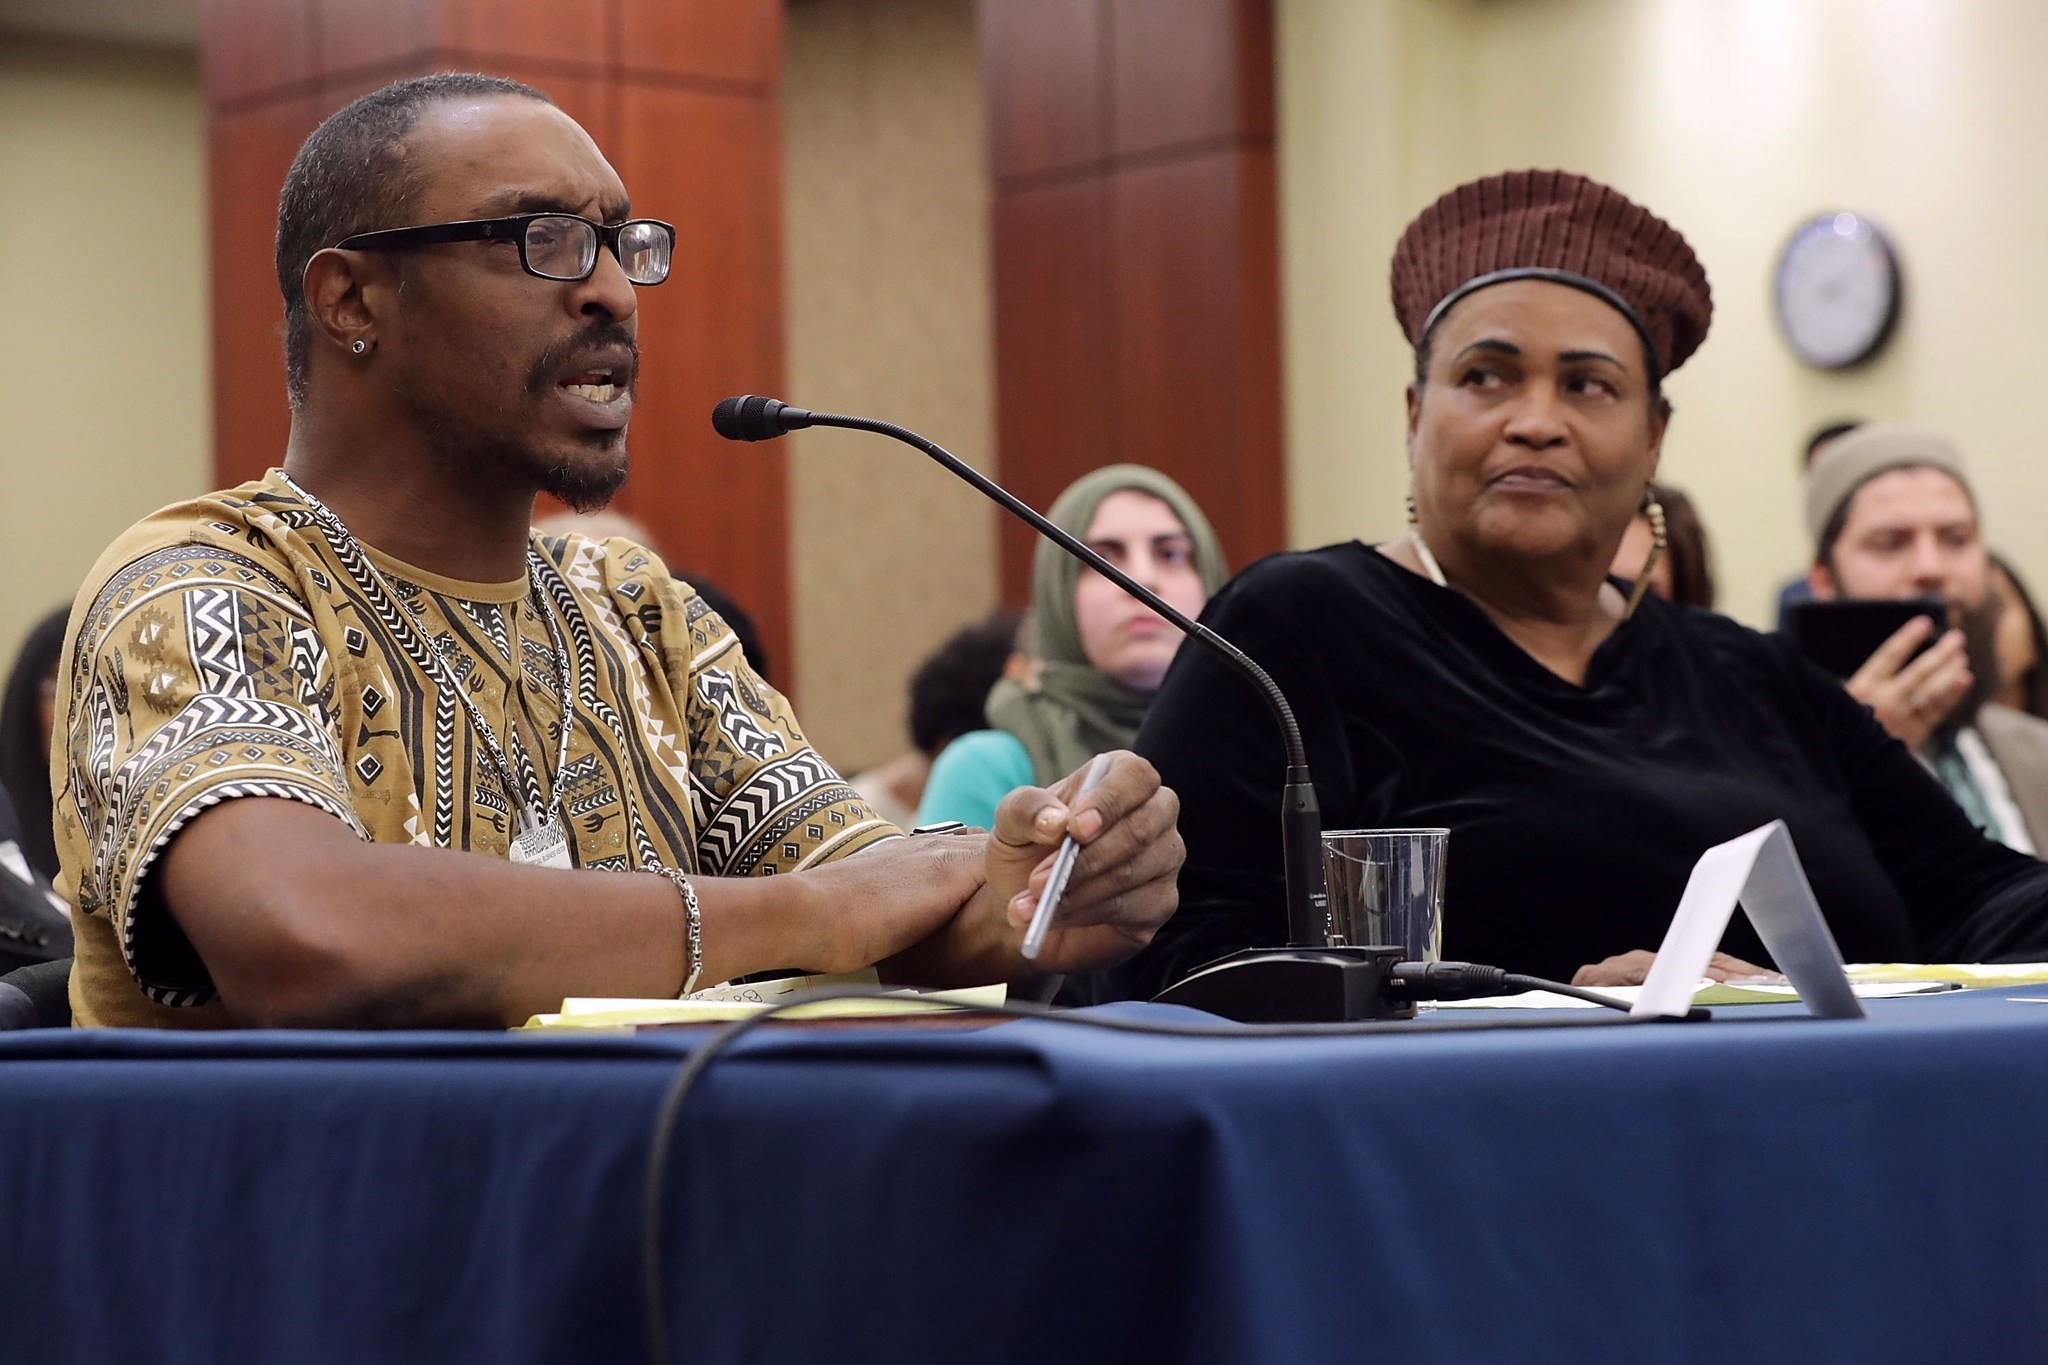 Muhammad Ali Jr and his mother Khalilah Camacho-Ali participate in a forum titled 'Ali v. Trump. (AFP Photo)